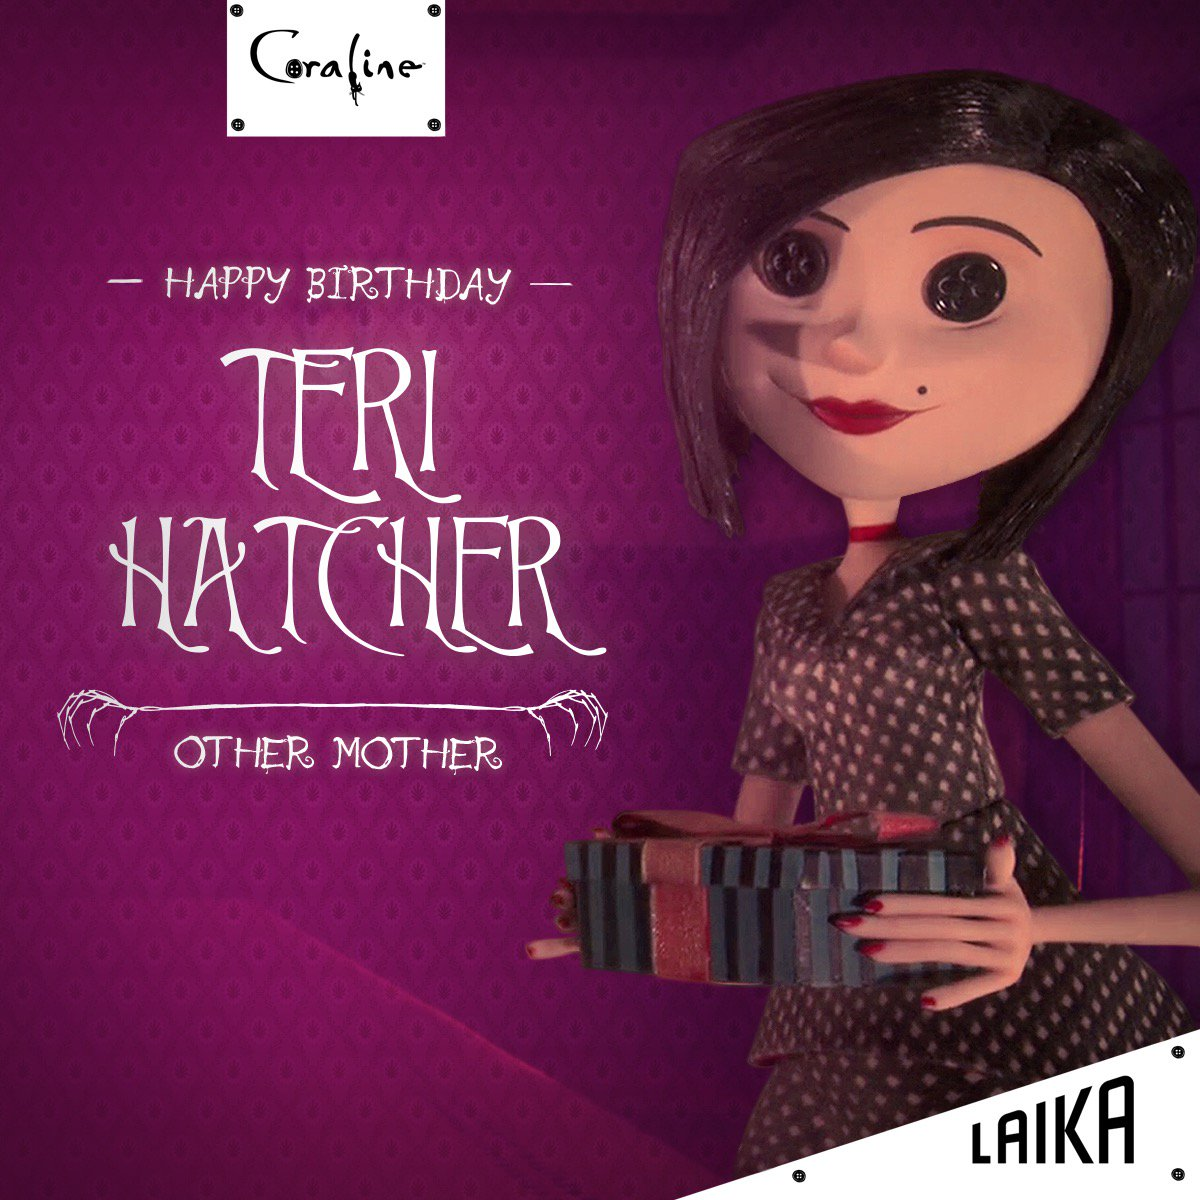 Laika On Twitter Hatchingchange Gave Life To Coraline S Mom Other Mother And Beldam With Just One Extraordinary Voice To Honor Her Birthday We Were Going To Sew Buttons Into Our Eyes But We